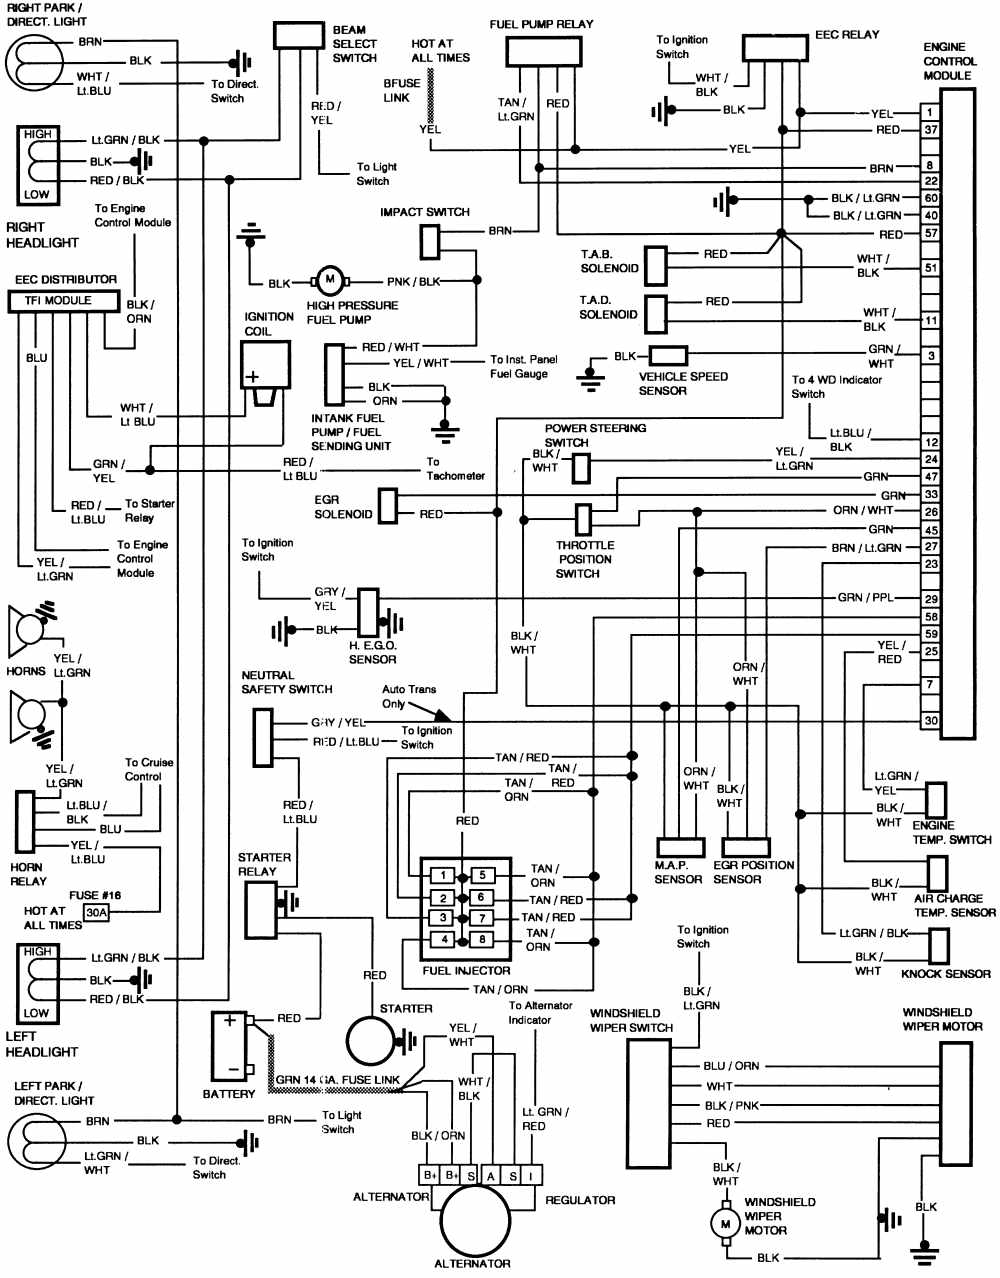 Opel Engine Diagrams as well Corsa B Fuse Box Diagram as well Ford F 250 1986 Engine Control Module furthermore Opel Corsa Ecu Diagram furthermore Harley Davidson Relay Location. on vauxhall vectra fuse box diagram